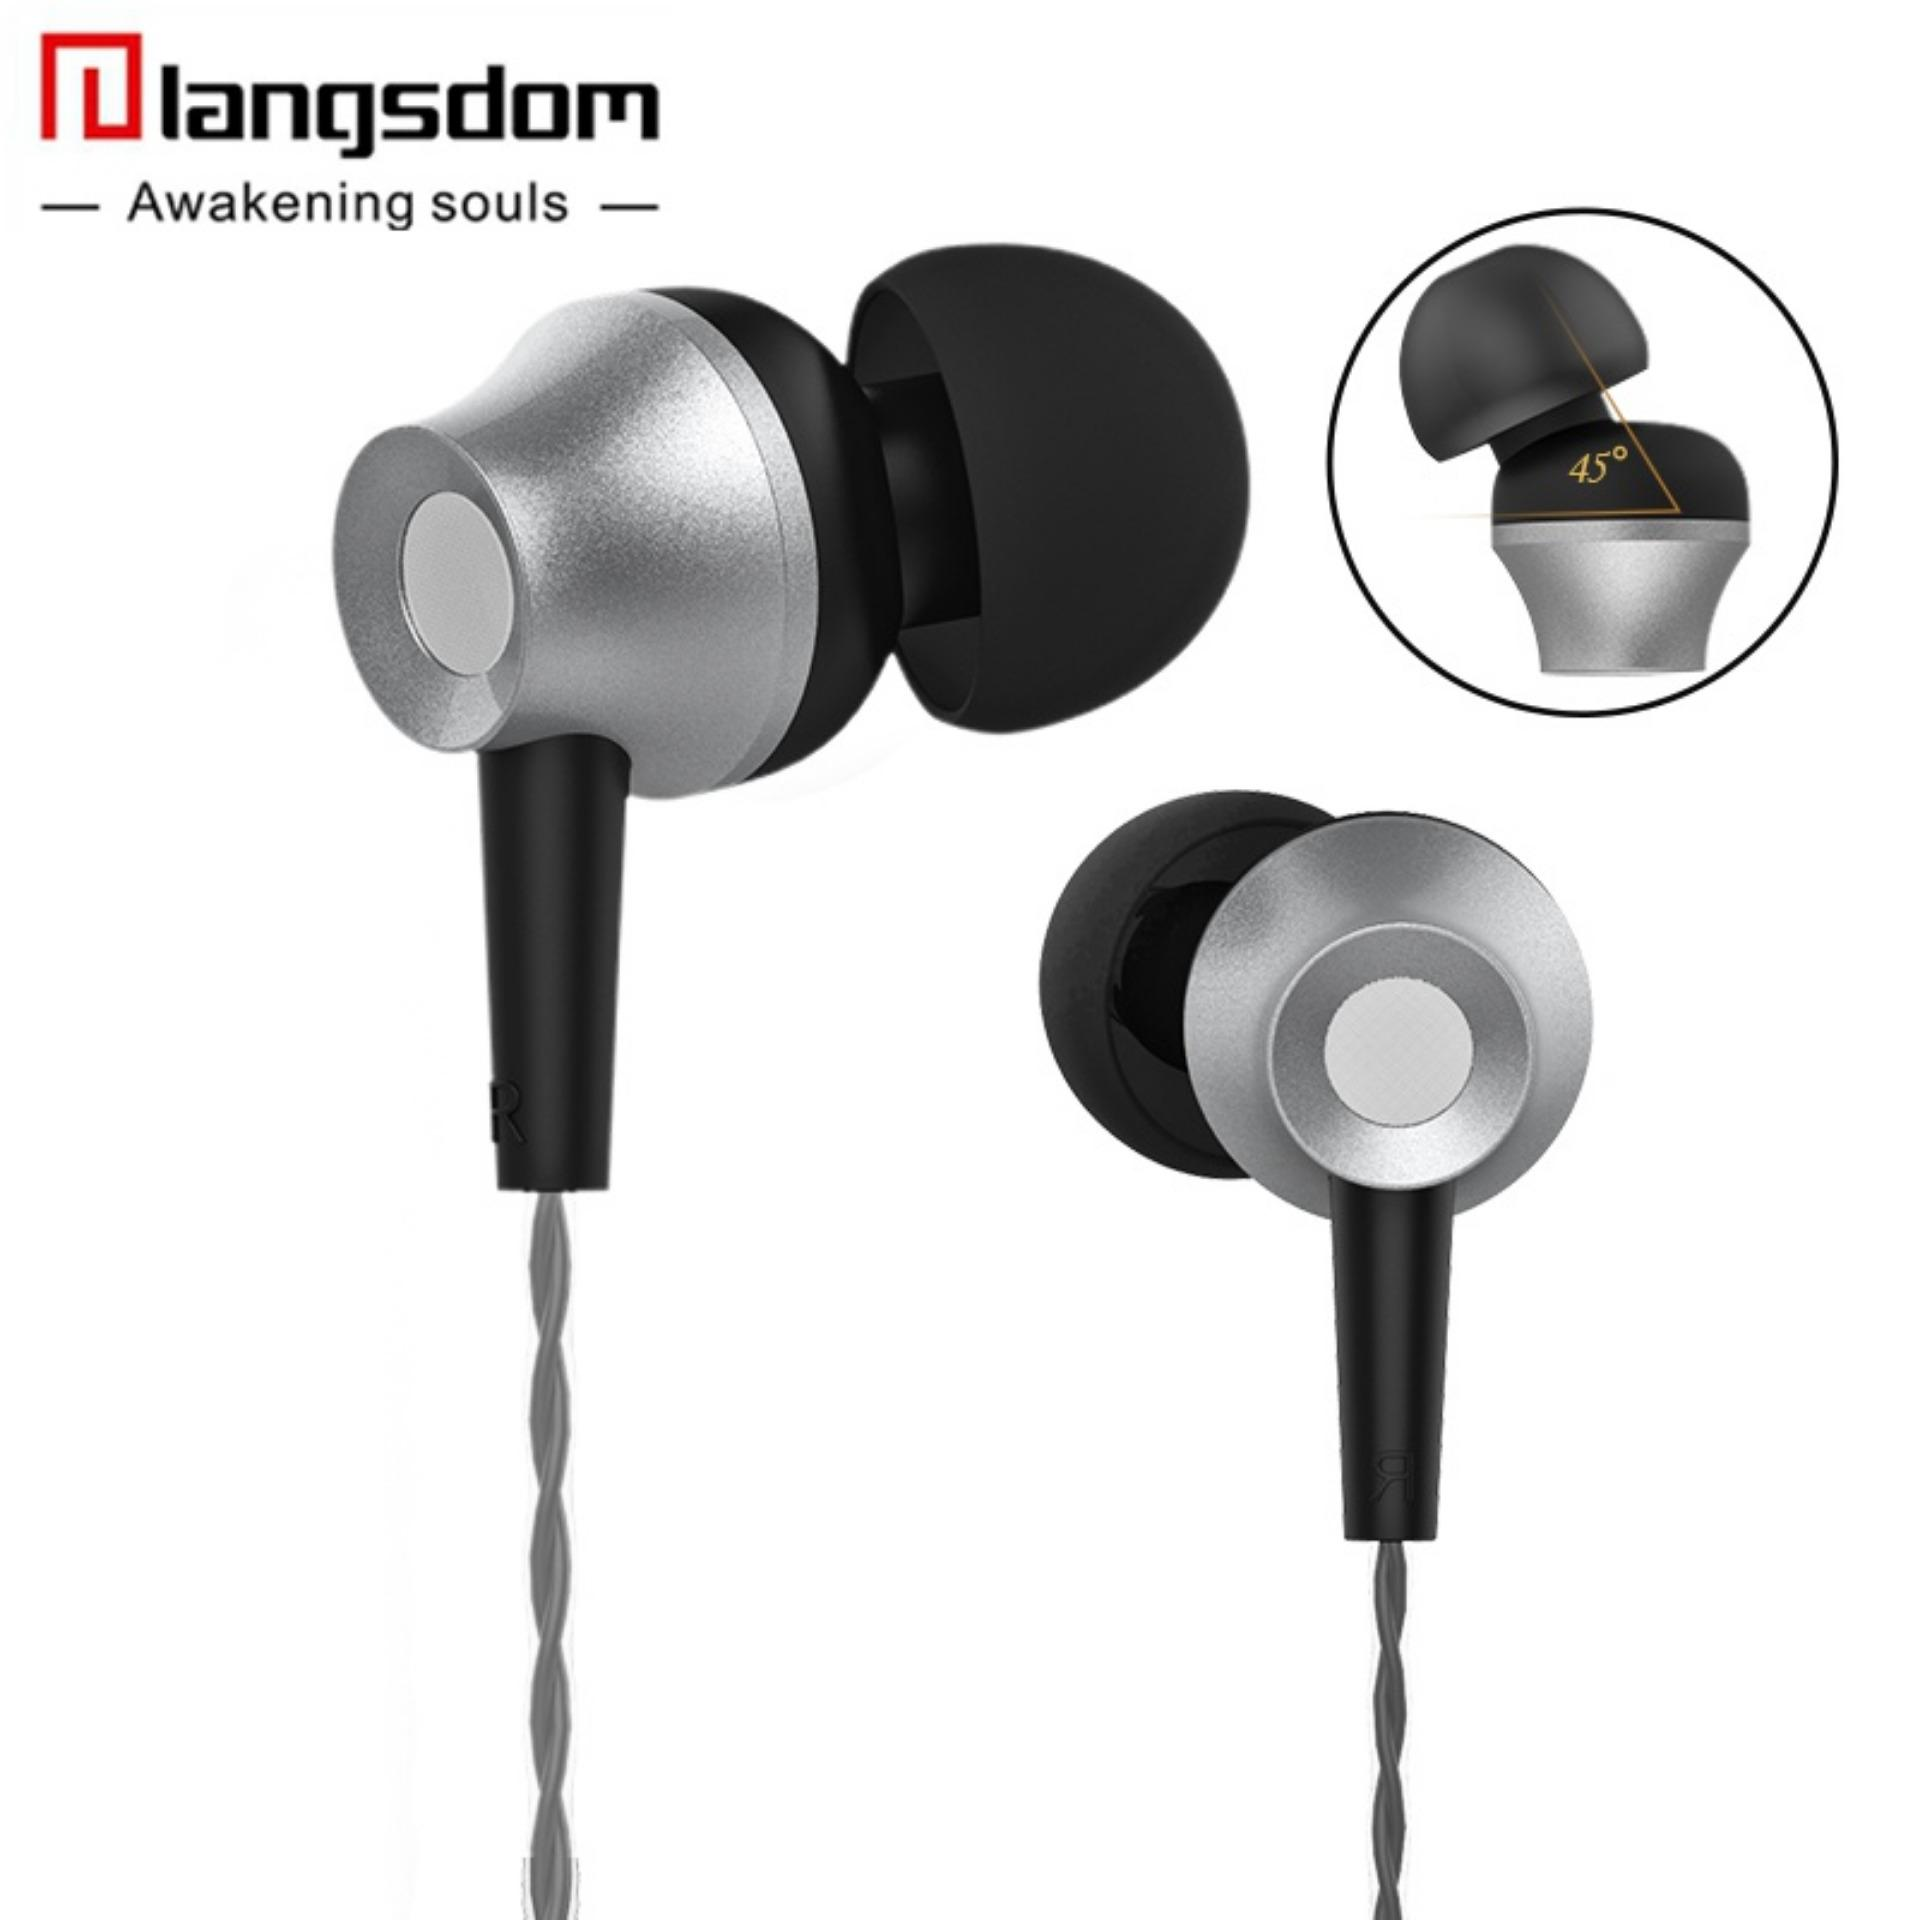 Langsdom M299 Volume Control Earphones Metal Stereo earphone with Mic 3.5mm In-Ear Headset for Apple Samsung Sony HTC Mp3 Tablet